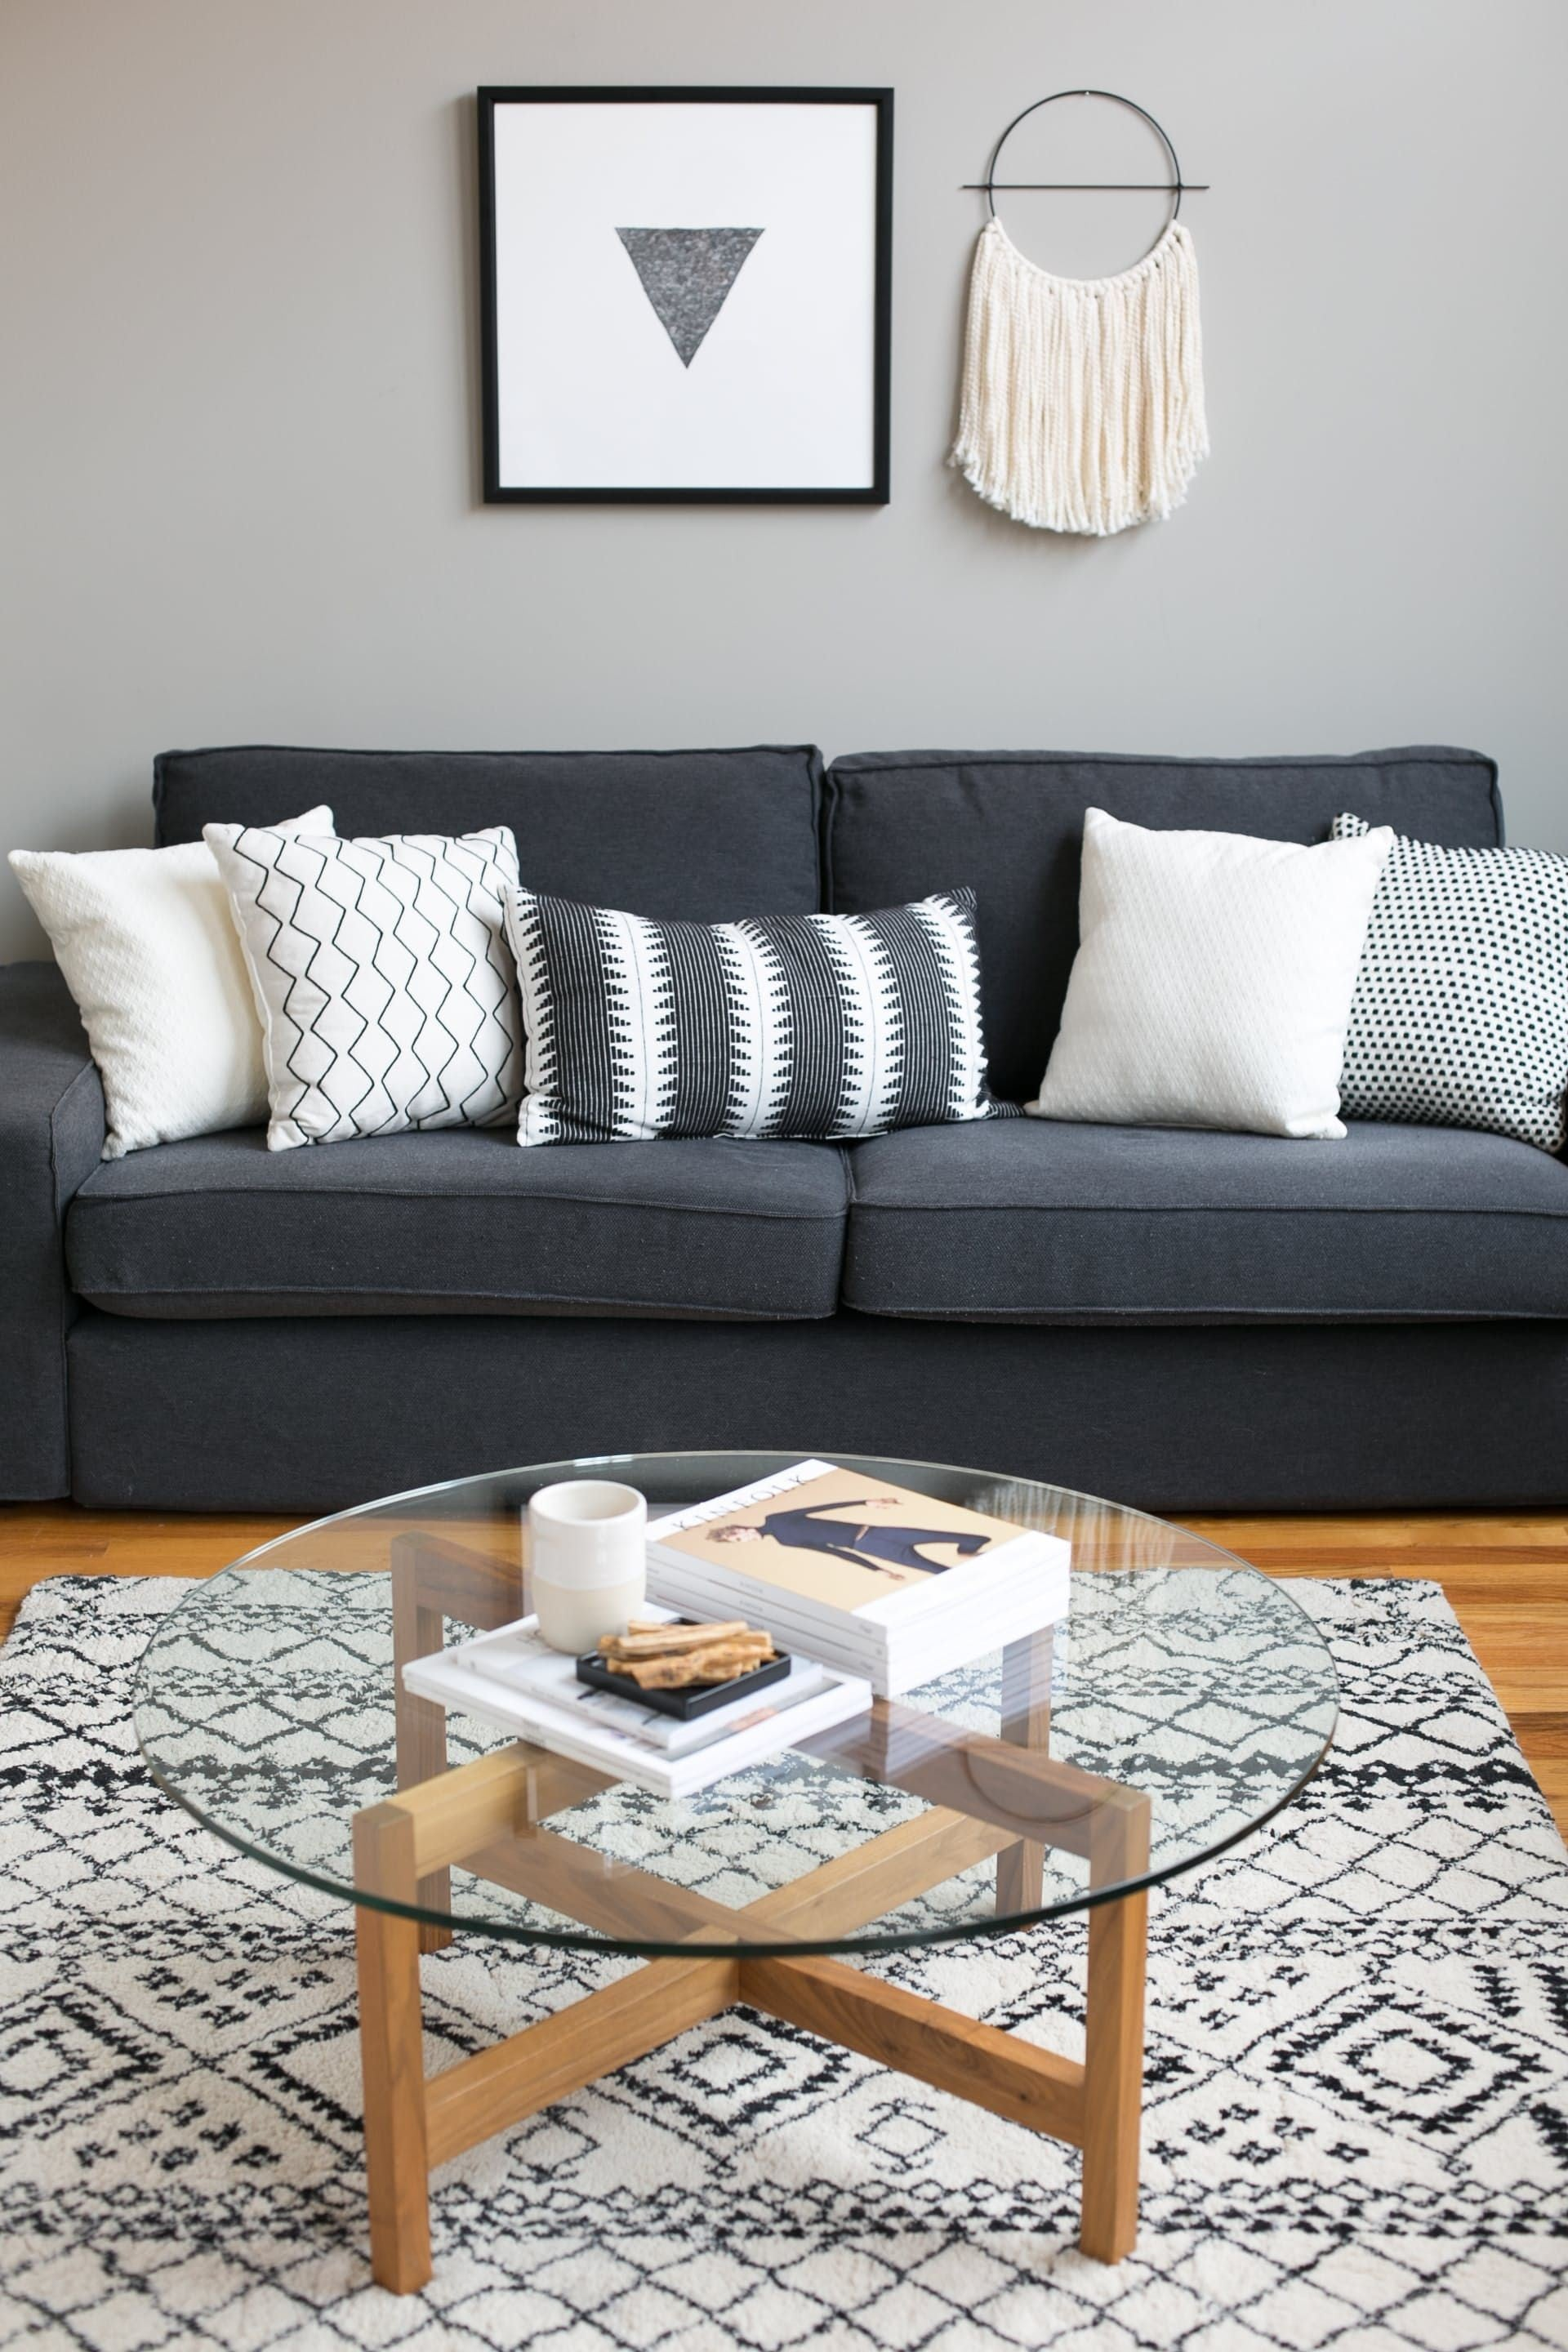 7 musthave accessories for the modern living room